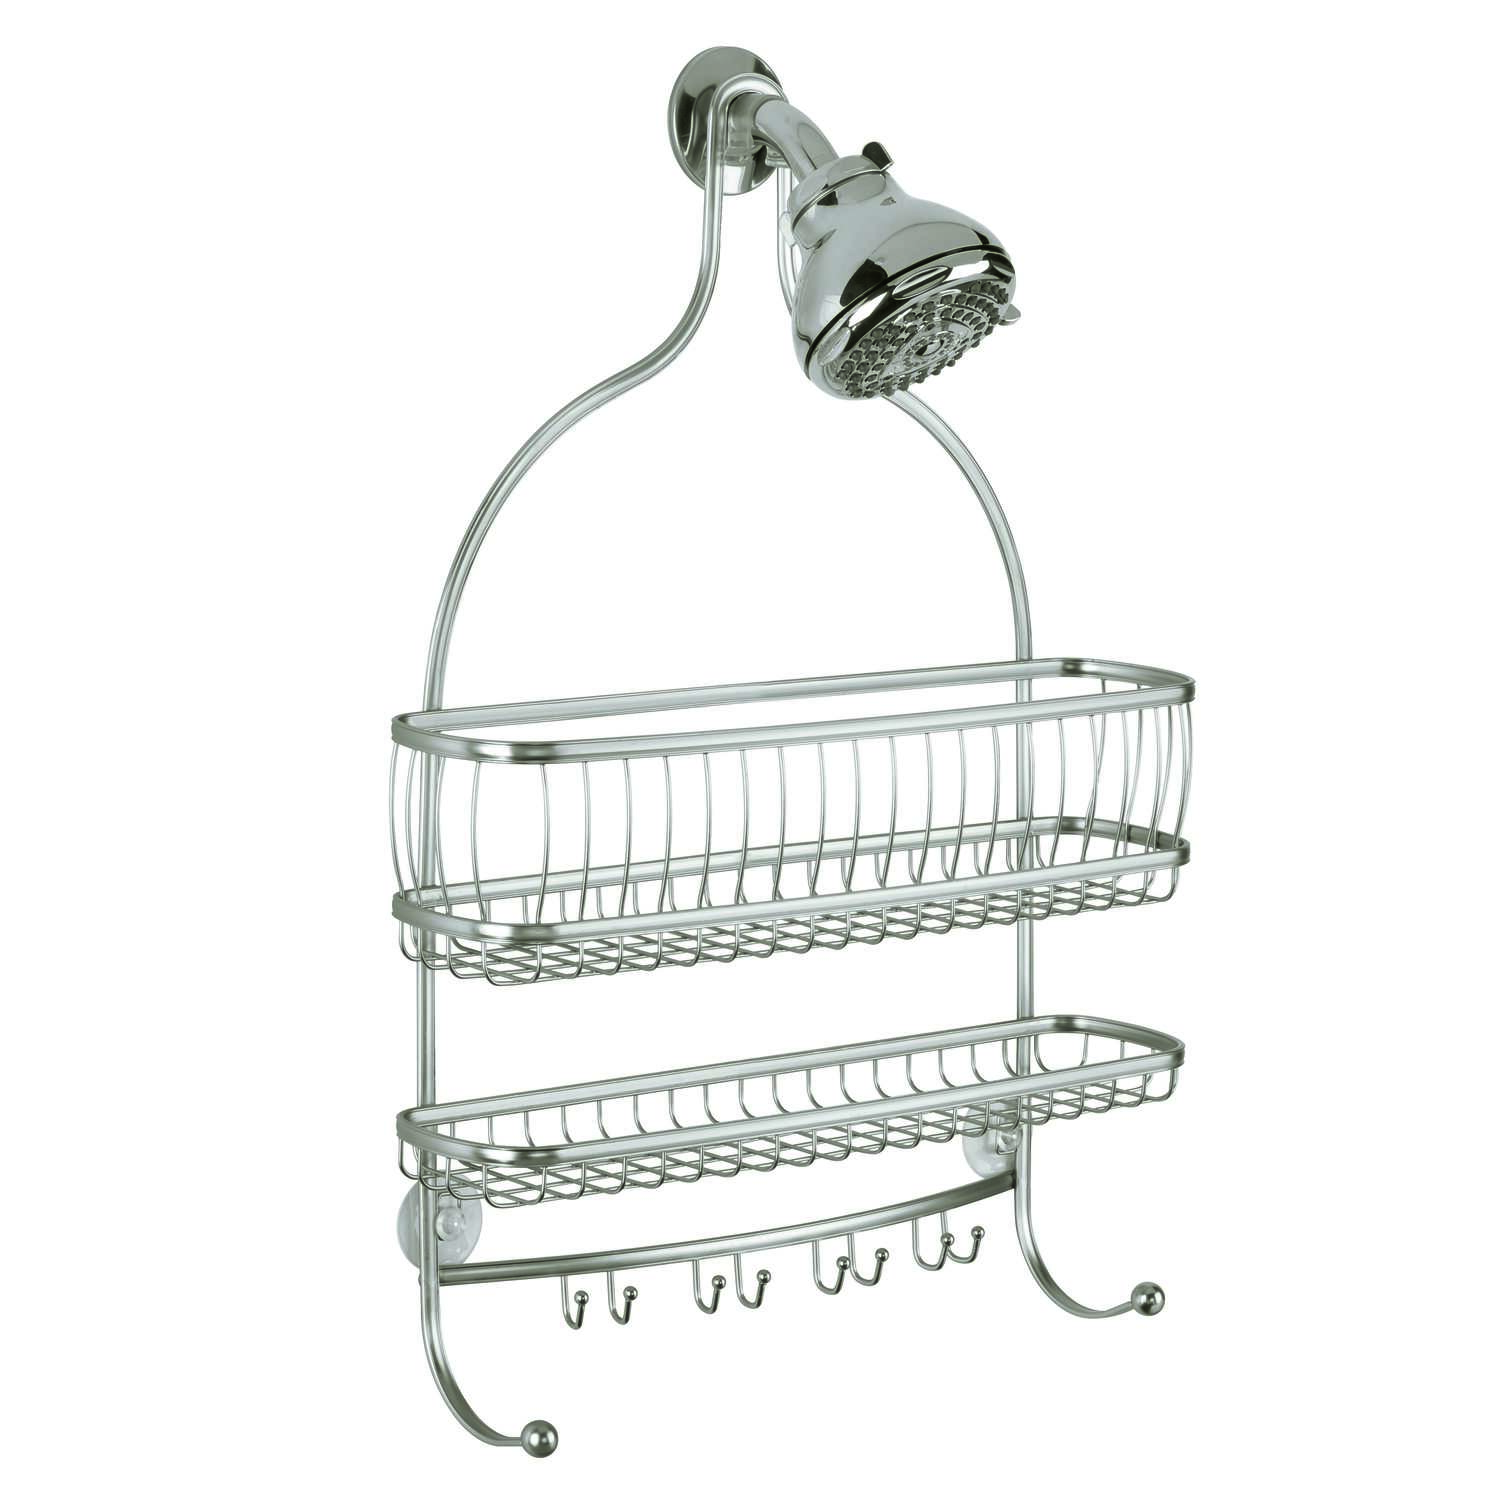 InterDesign York Lyra Jumbo 4 in. H x 15 in. W x 21 in. L Satin Nickel Silver Shower Caddy